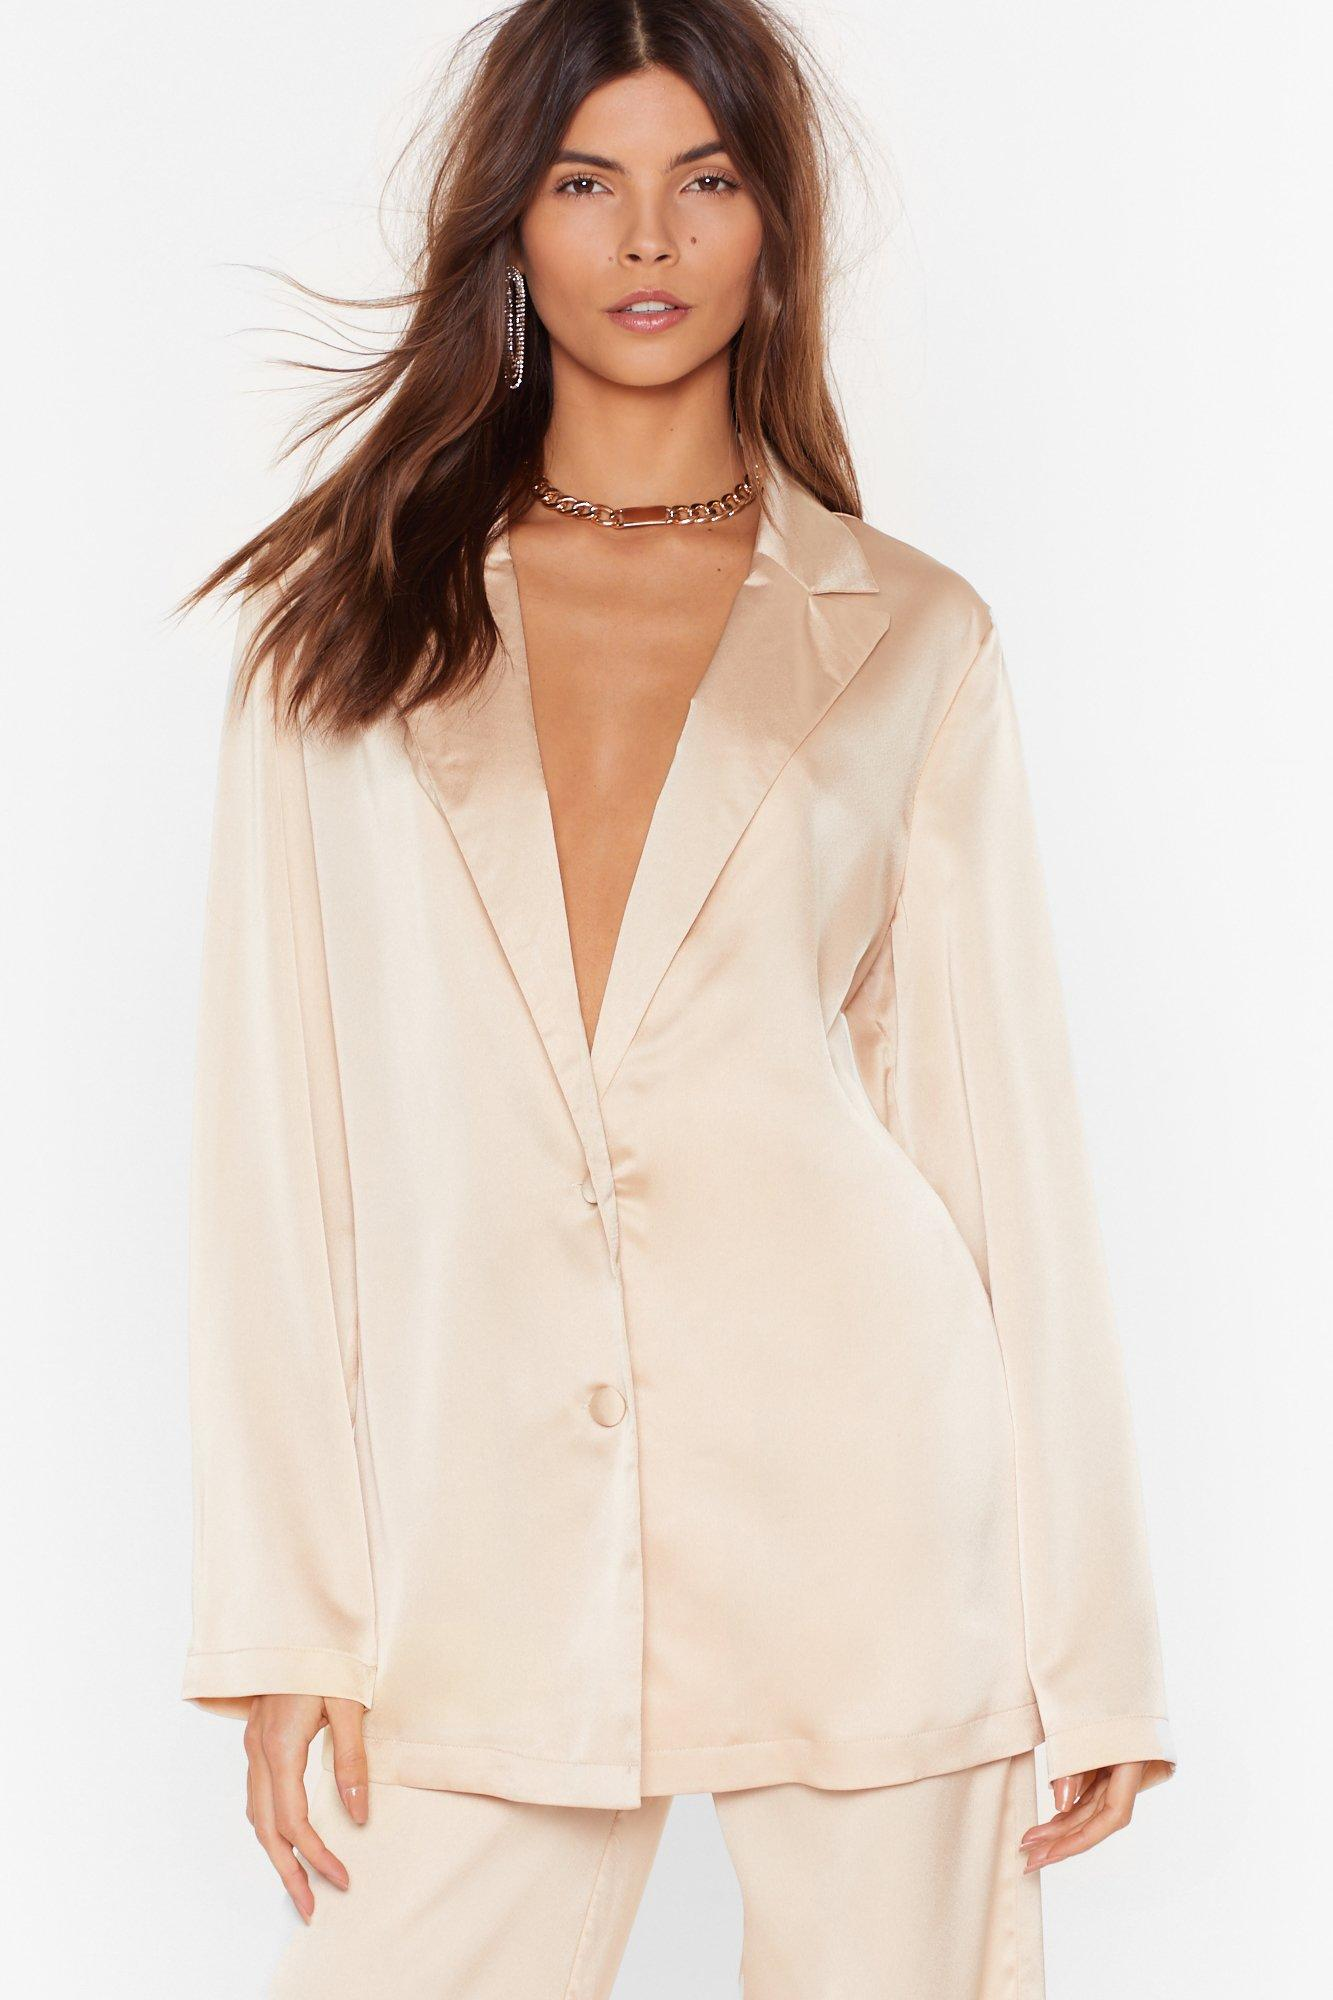 Image of Sleek to Our Heart Satin Longline Shirt